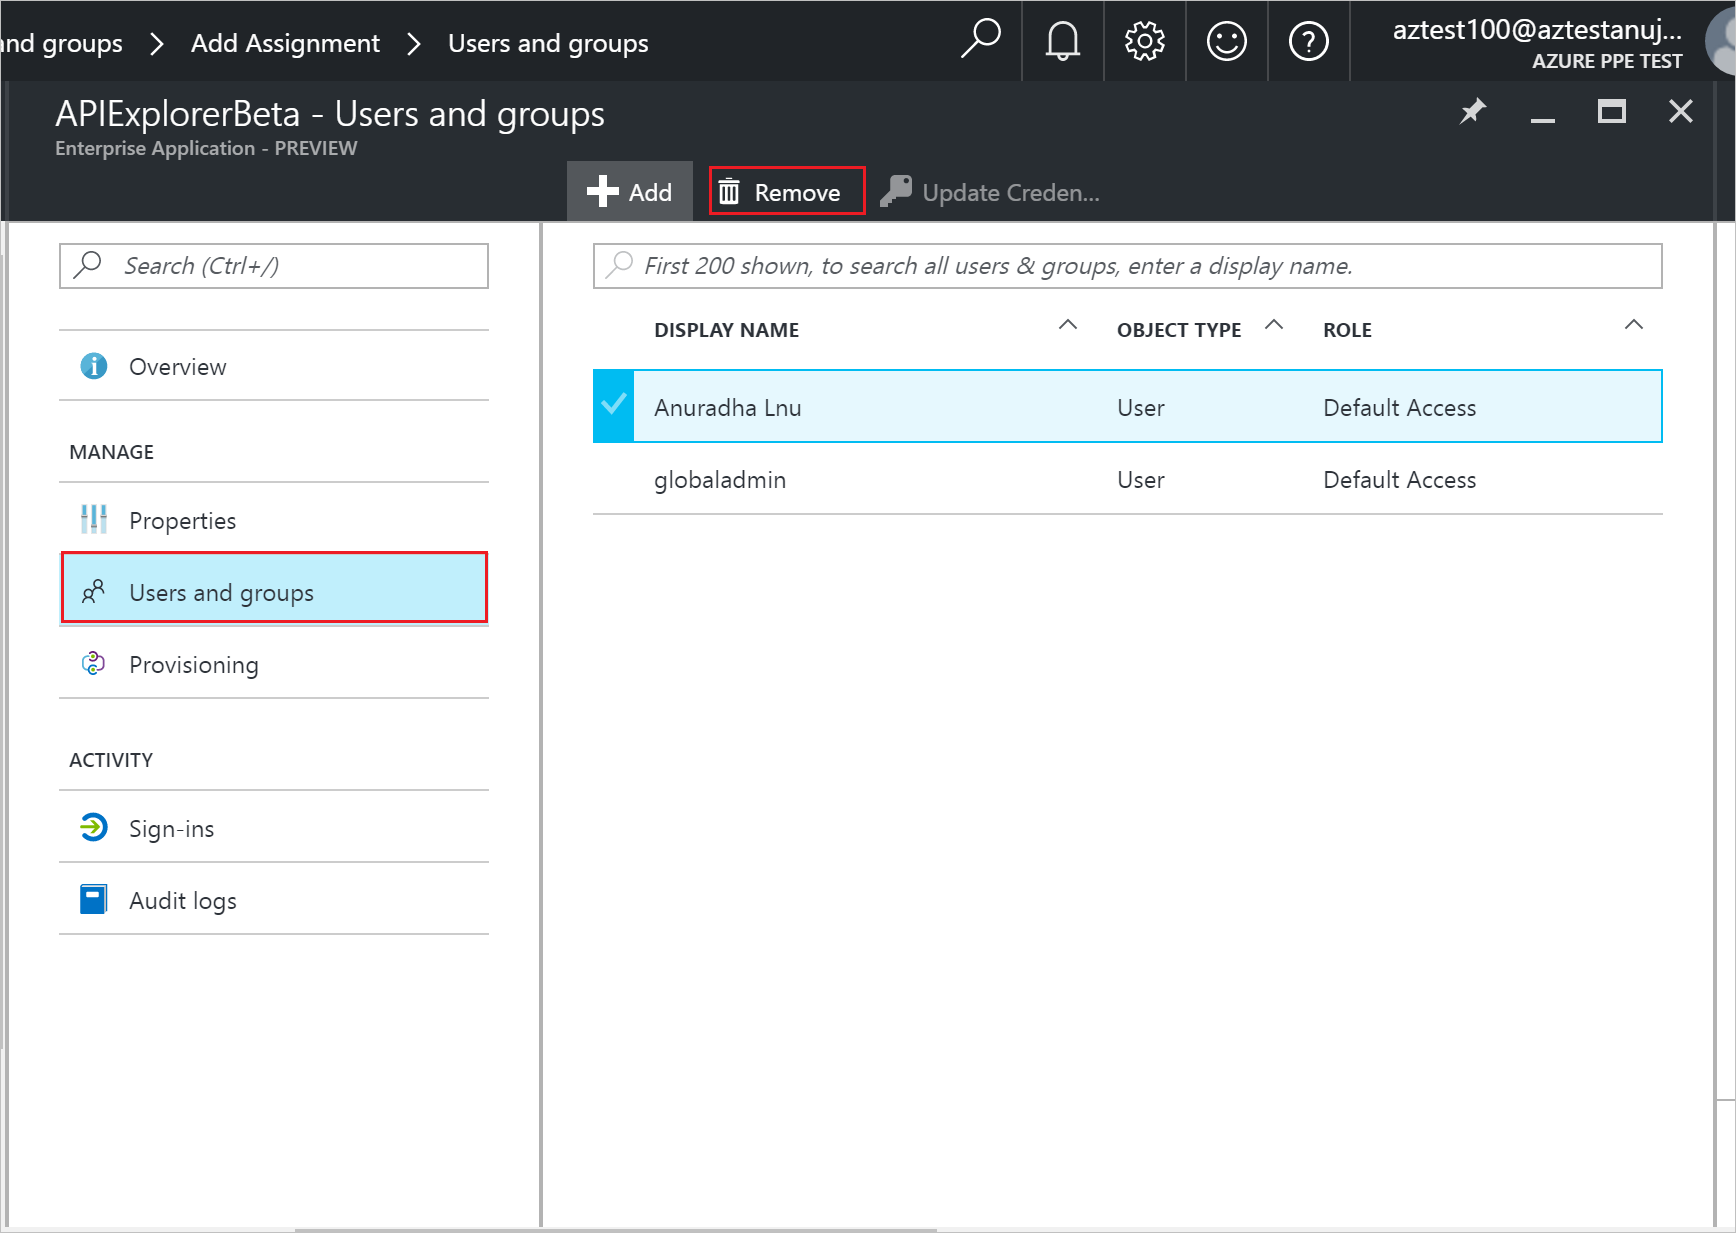 How to add a user in azure - Selecting Users Or Groups